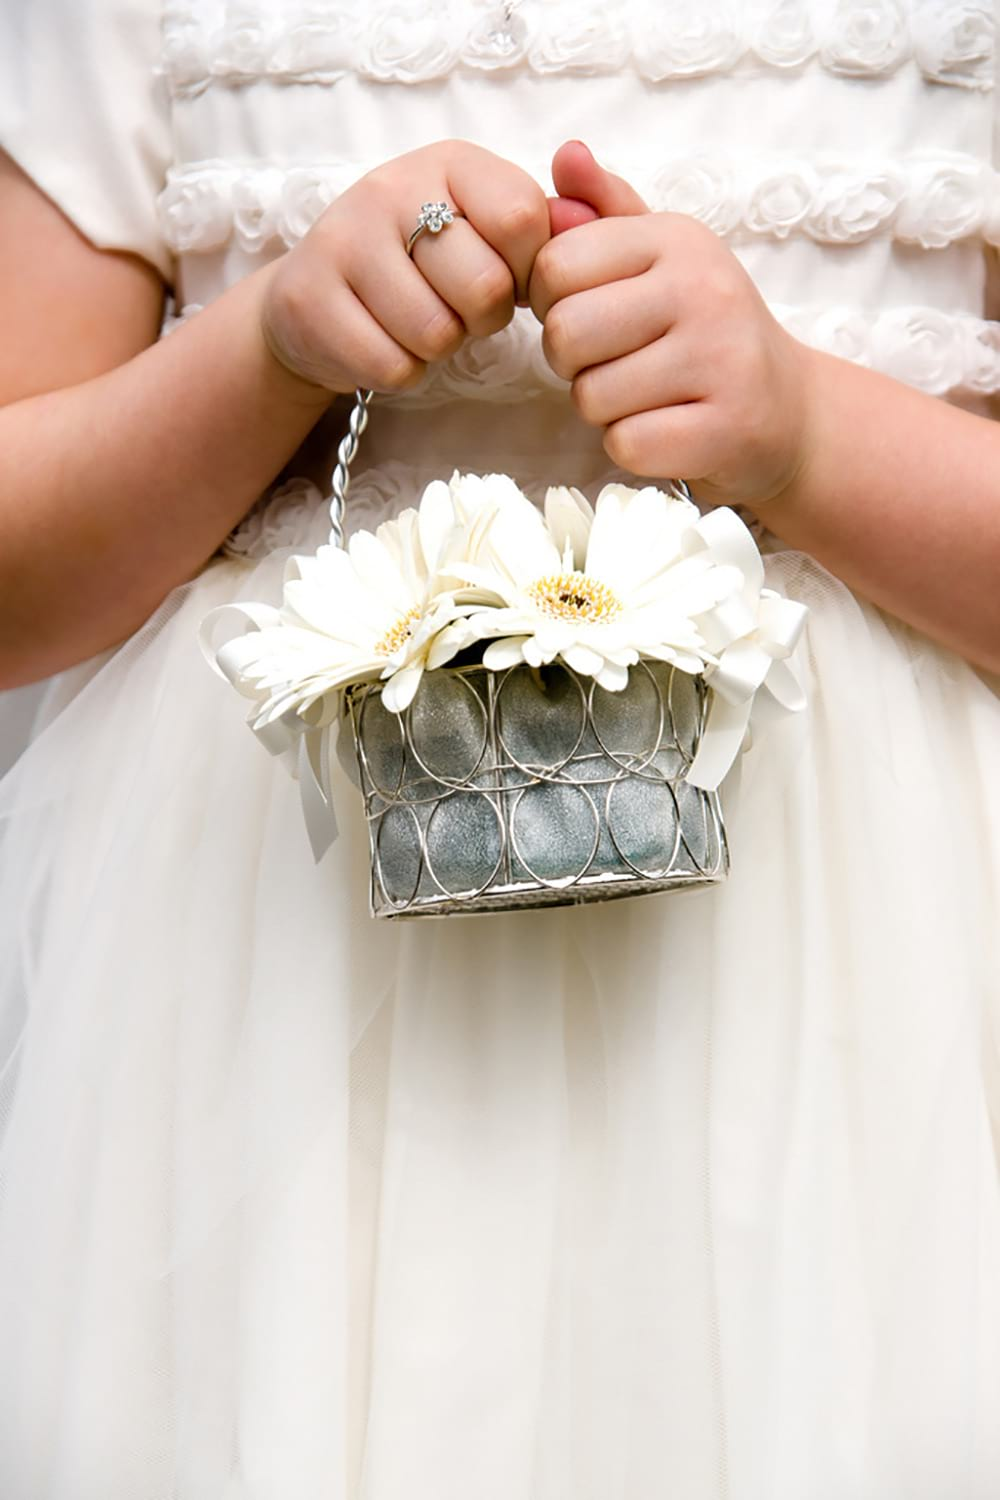 little flower baskett being held by flower girl